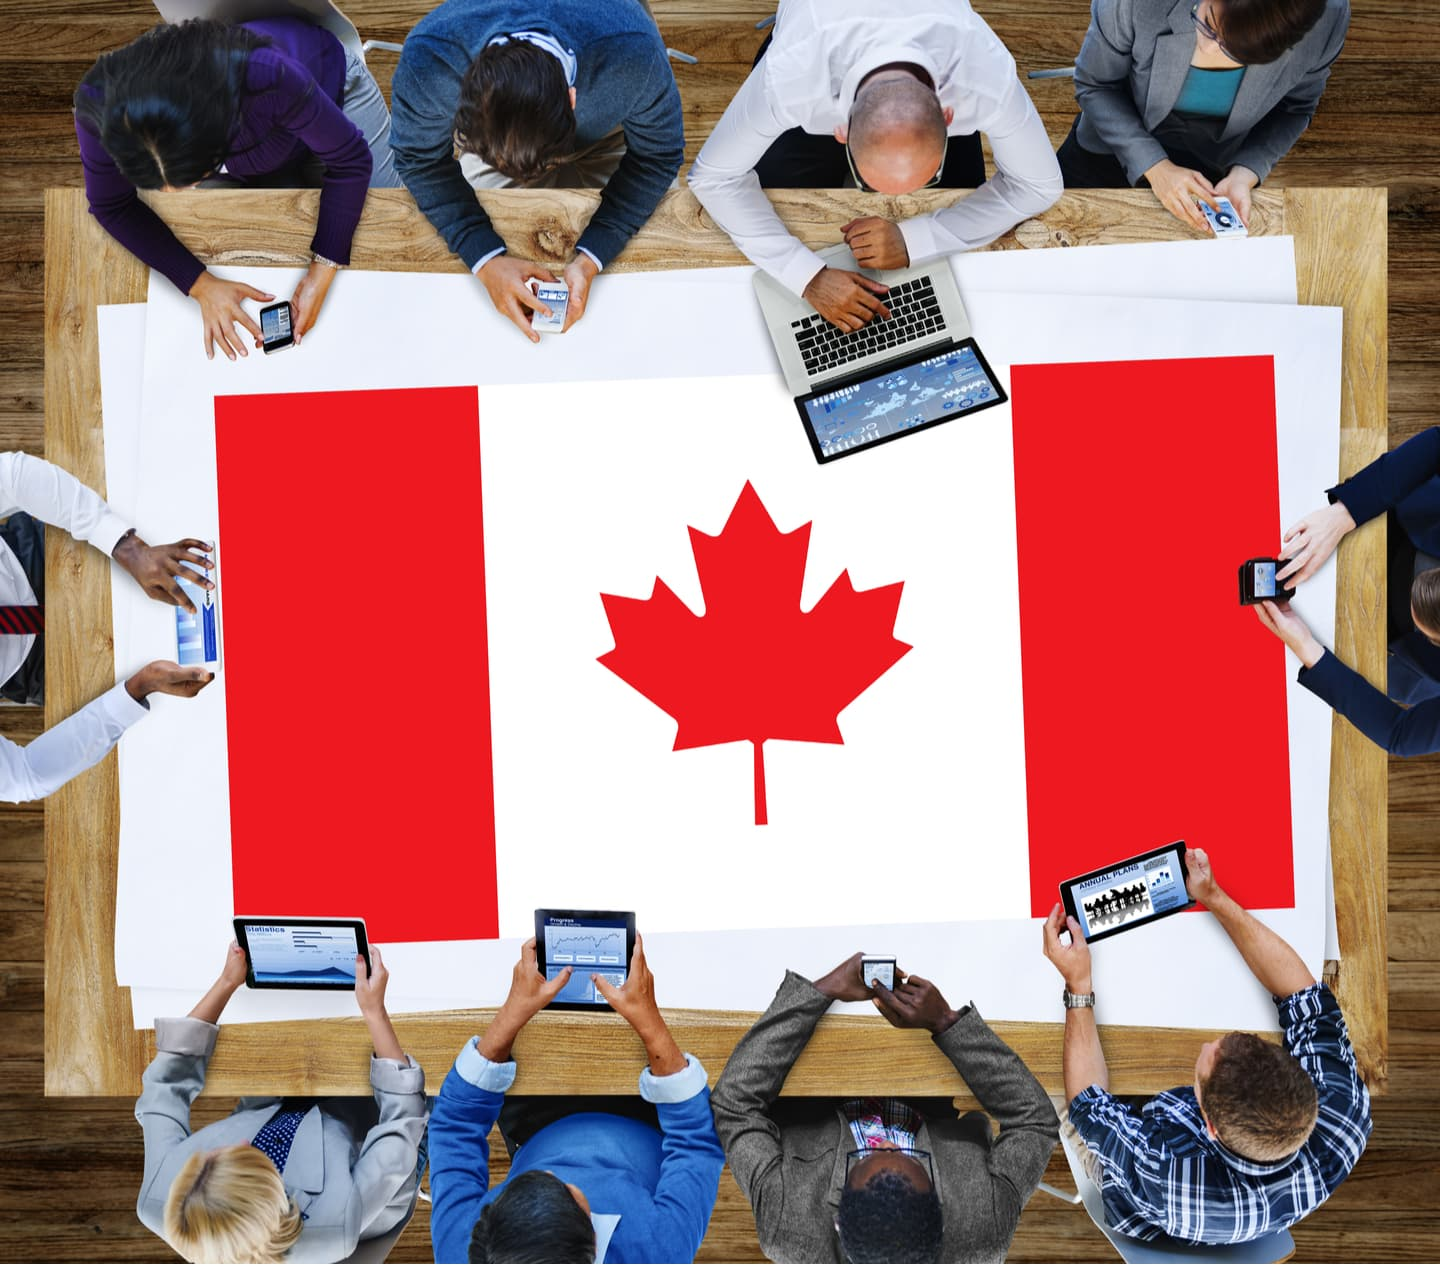 People working together with Canadian flag on the table